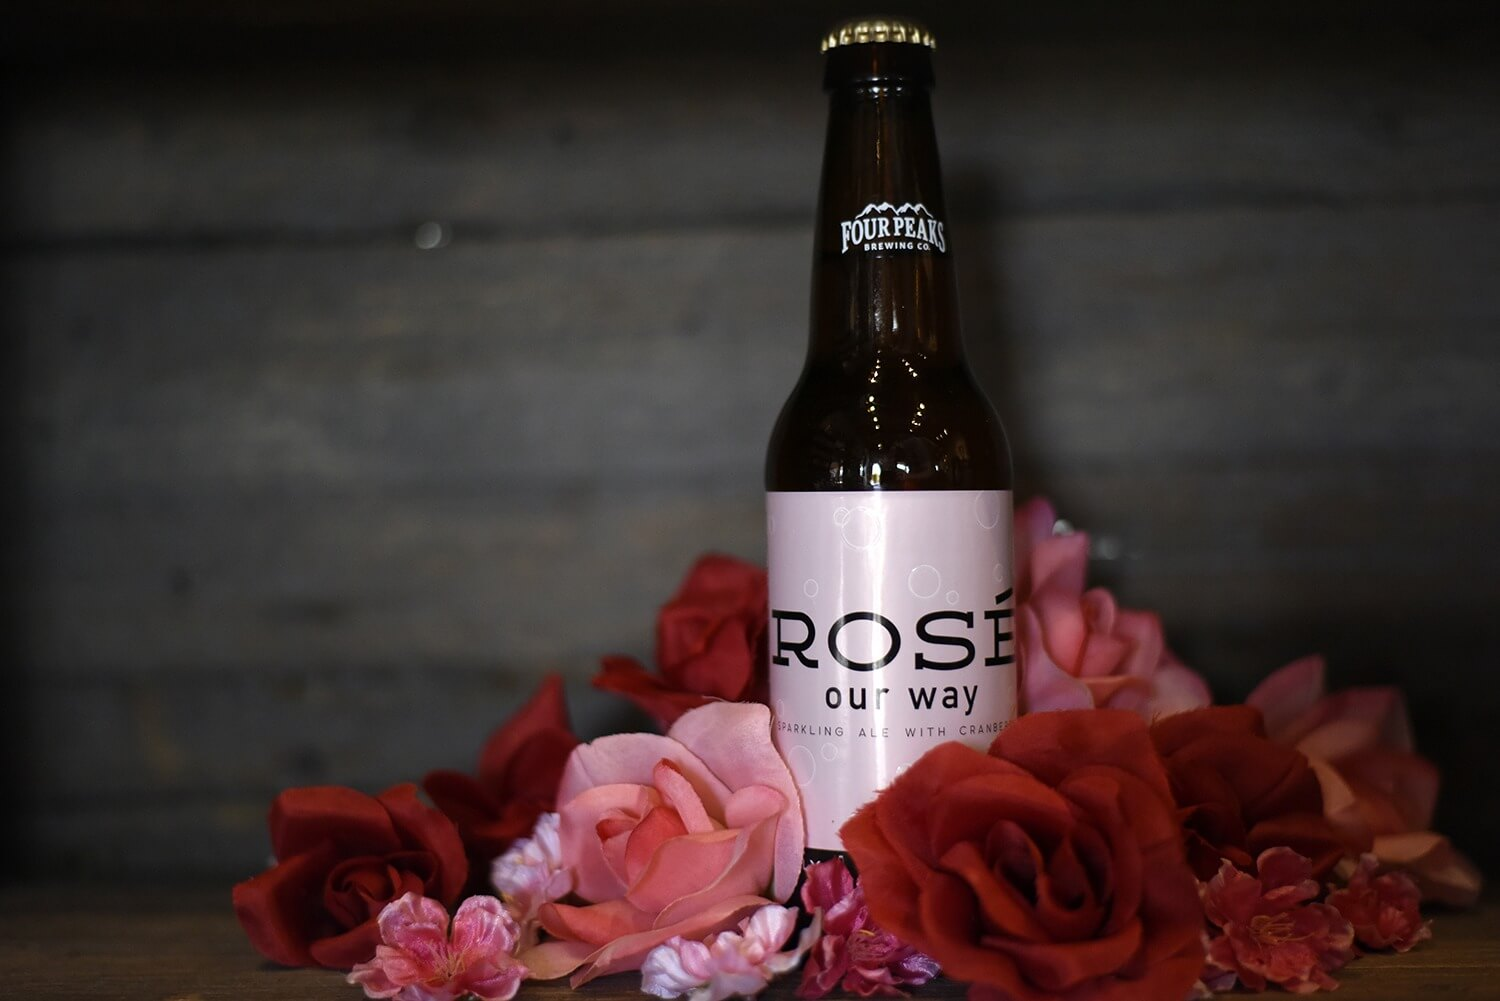 Four Peaks Rose Our Way